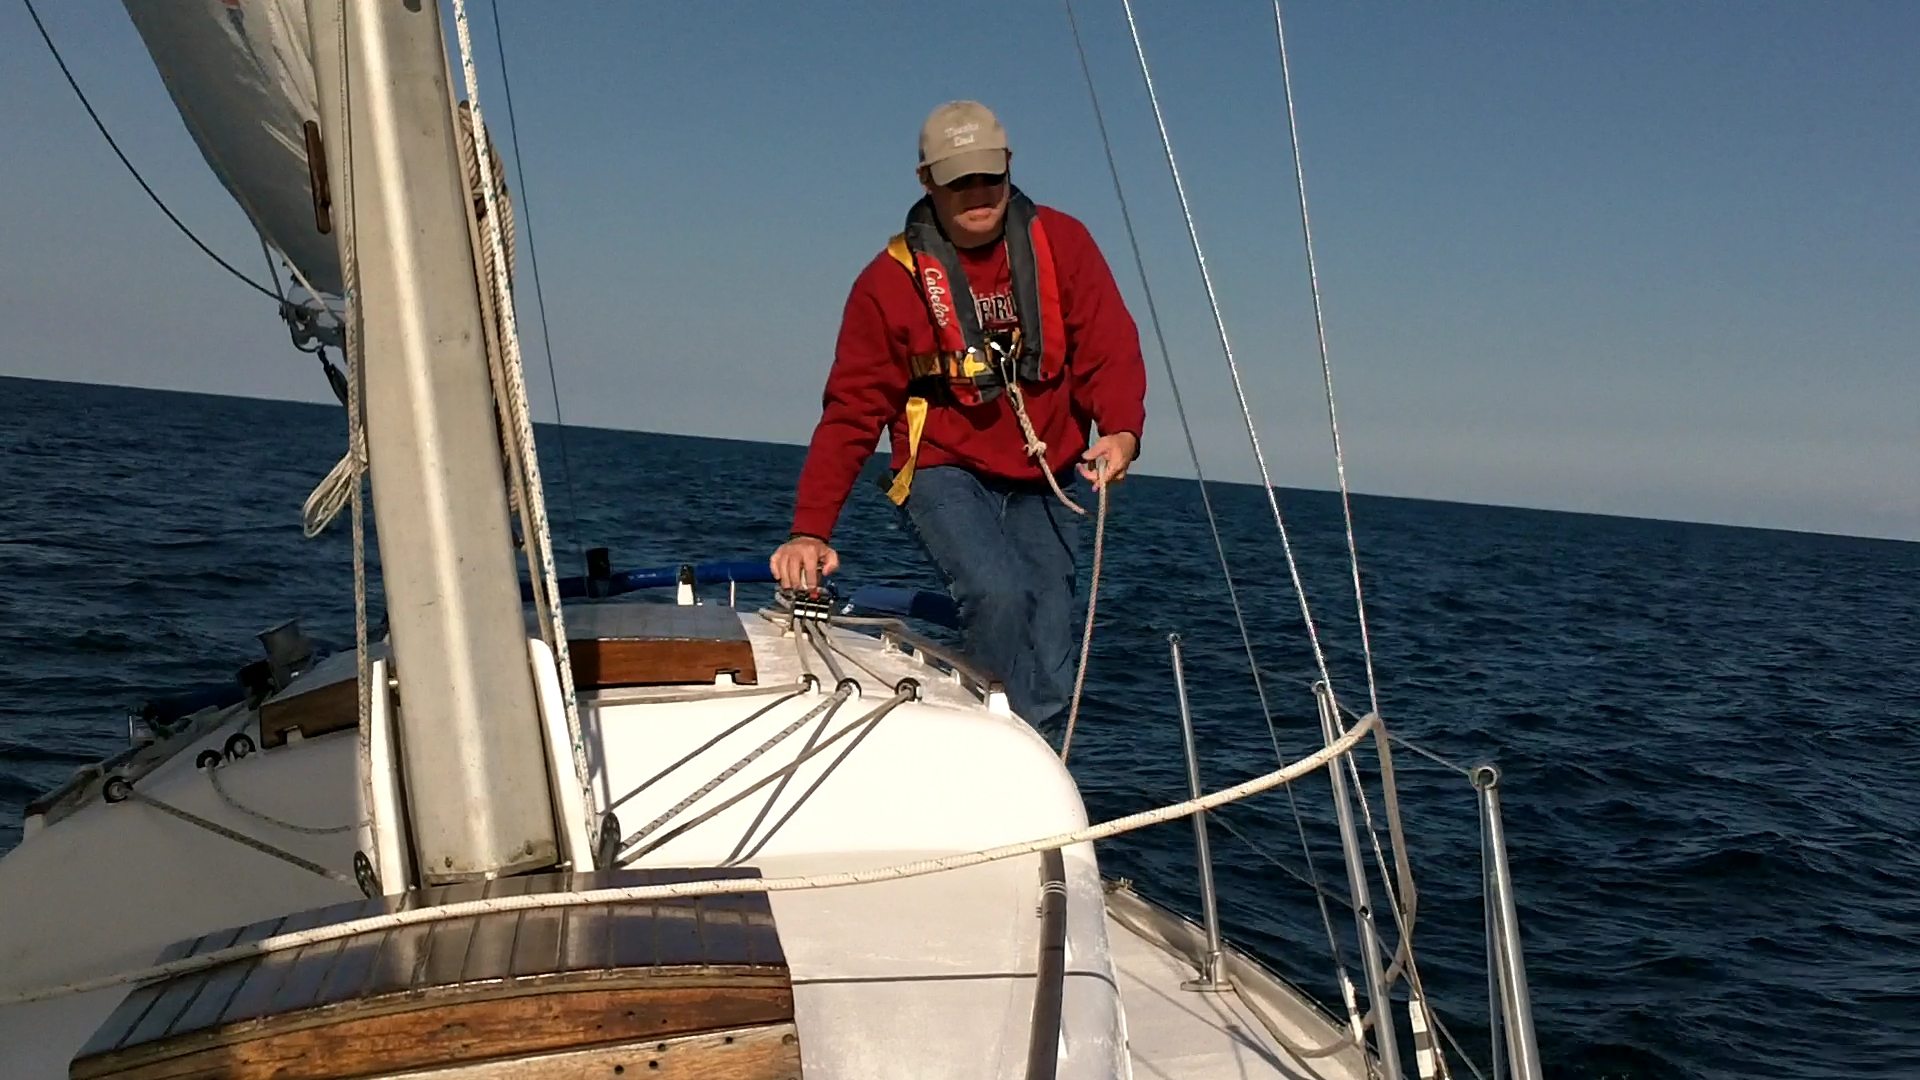 Always wearing a PFD and harness when sailing alone.